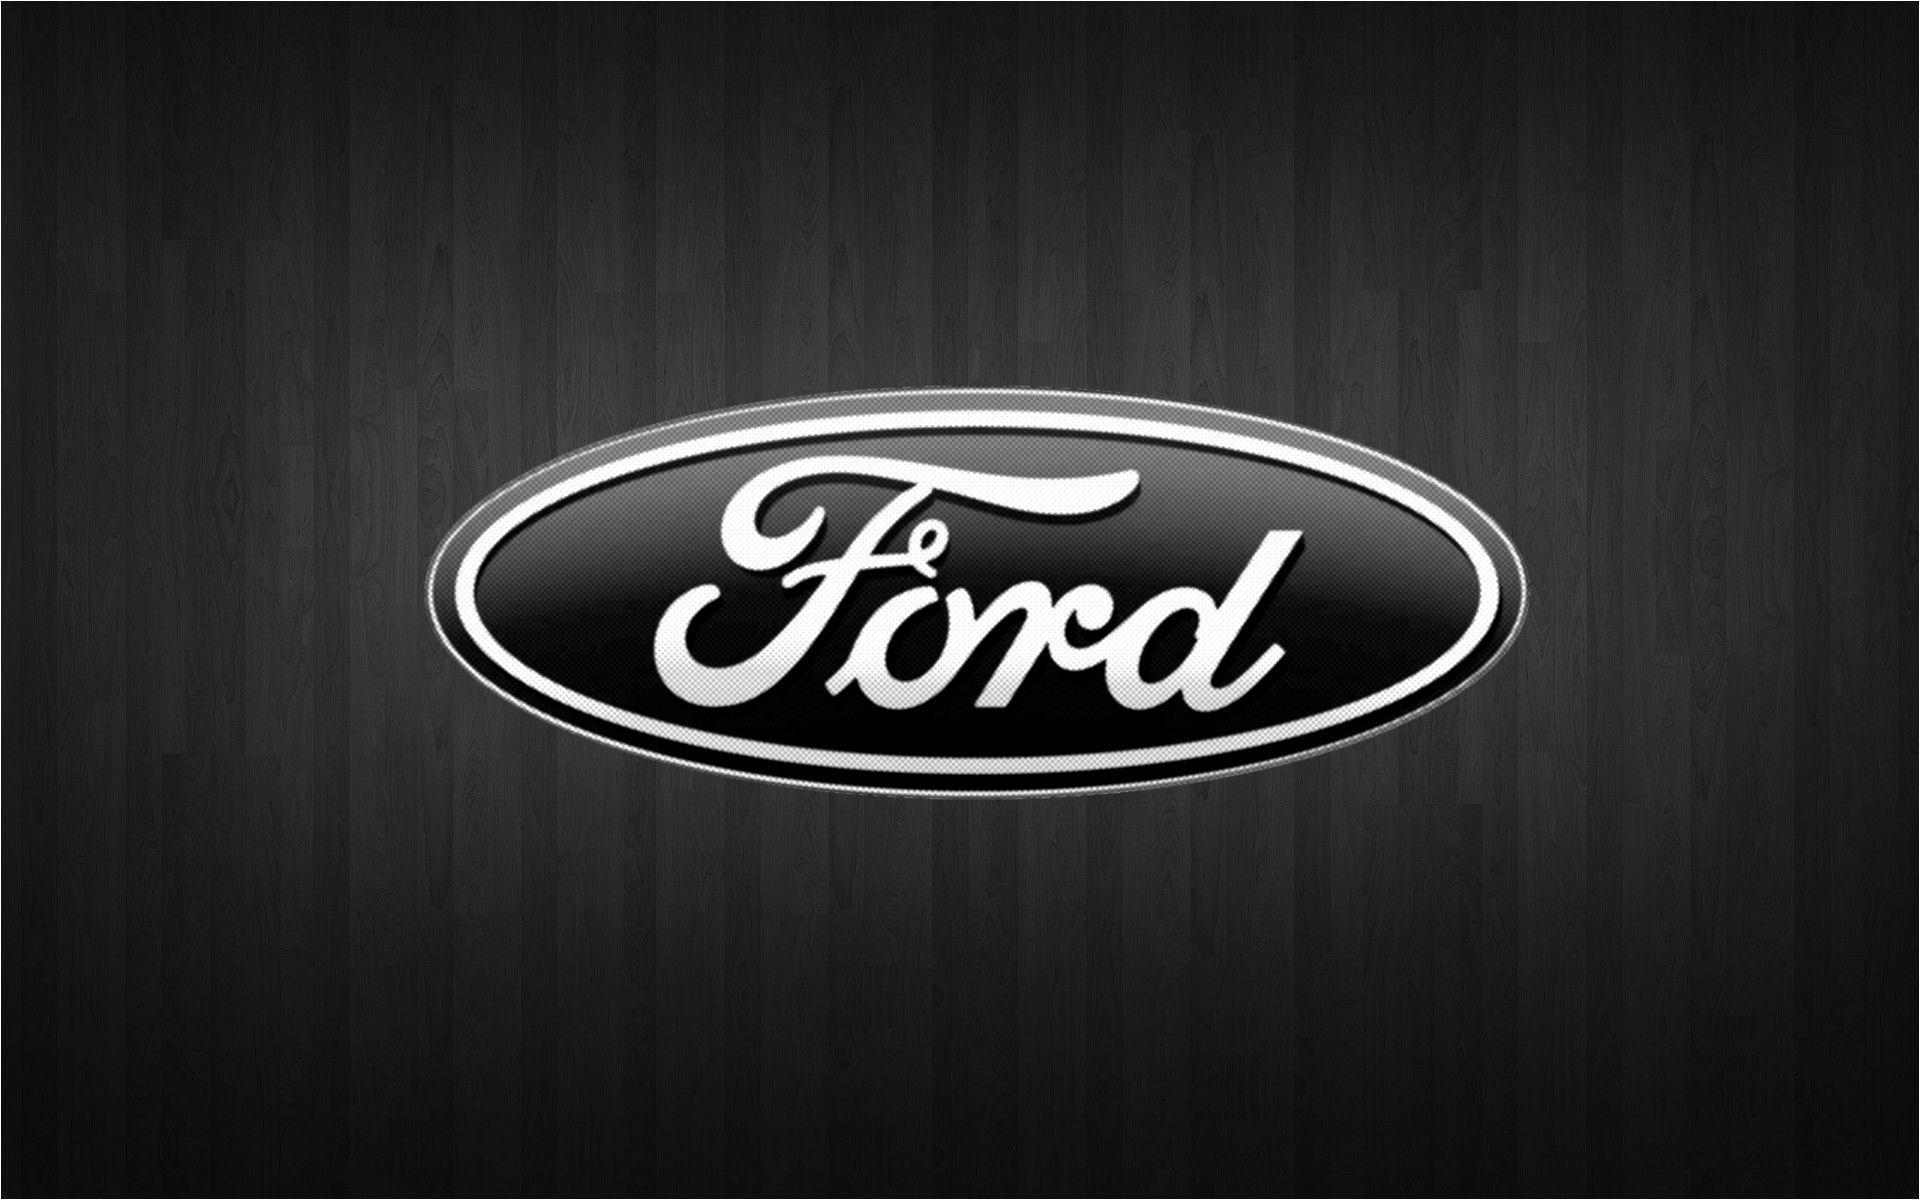 Best Built Ford Tough Wallpaper on HipWallpaper Ford Wallpaper